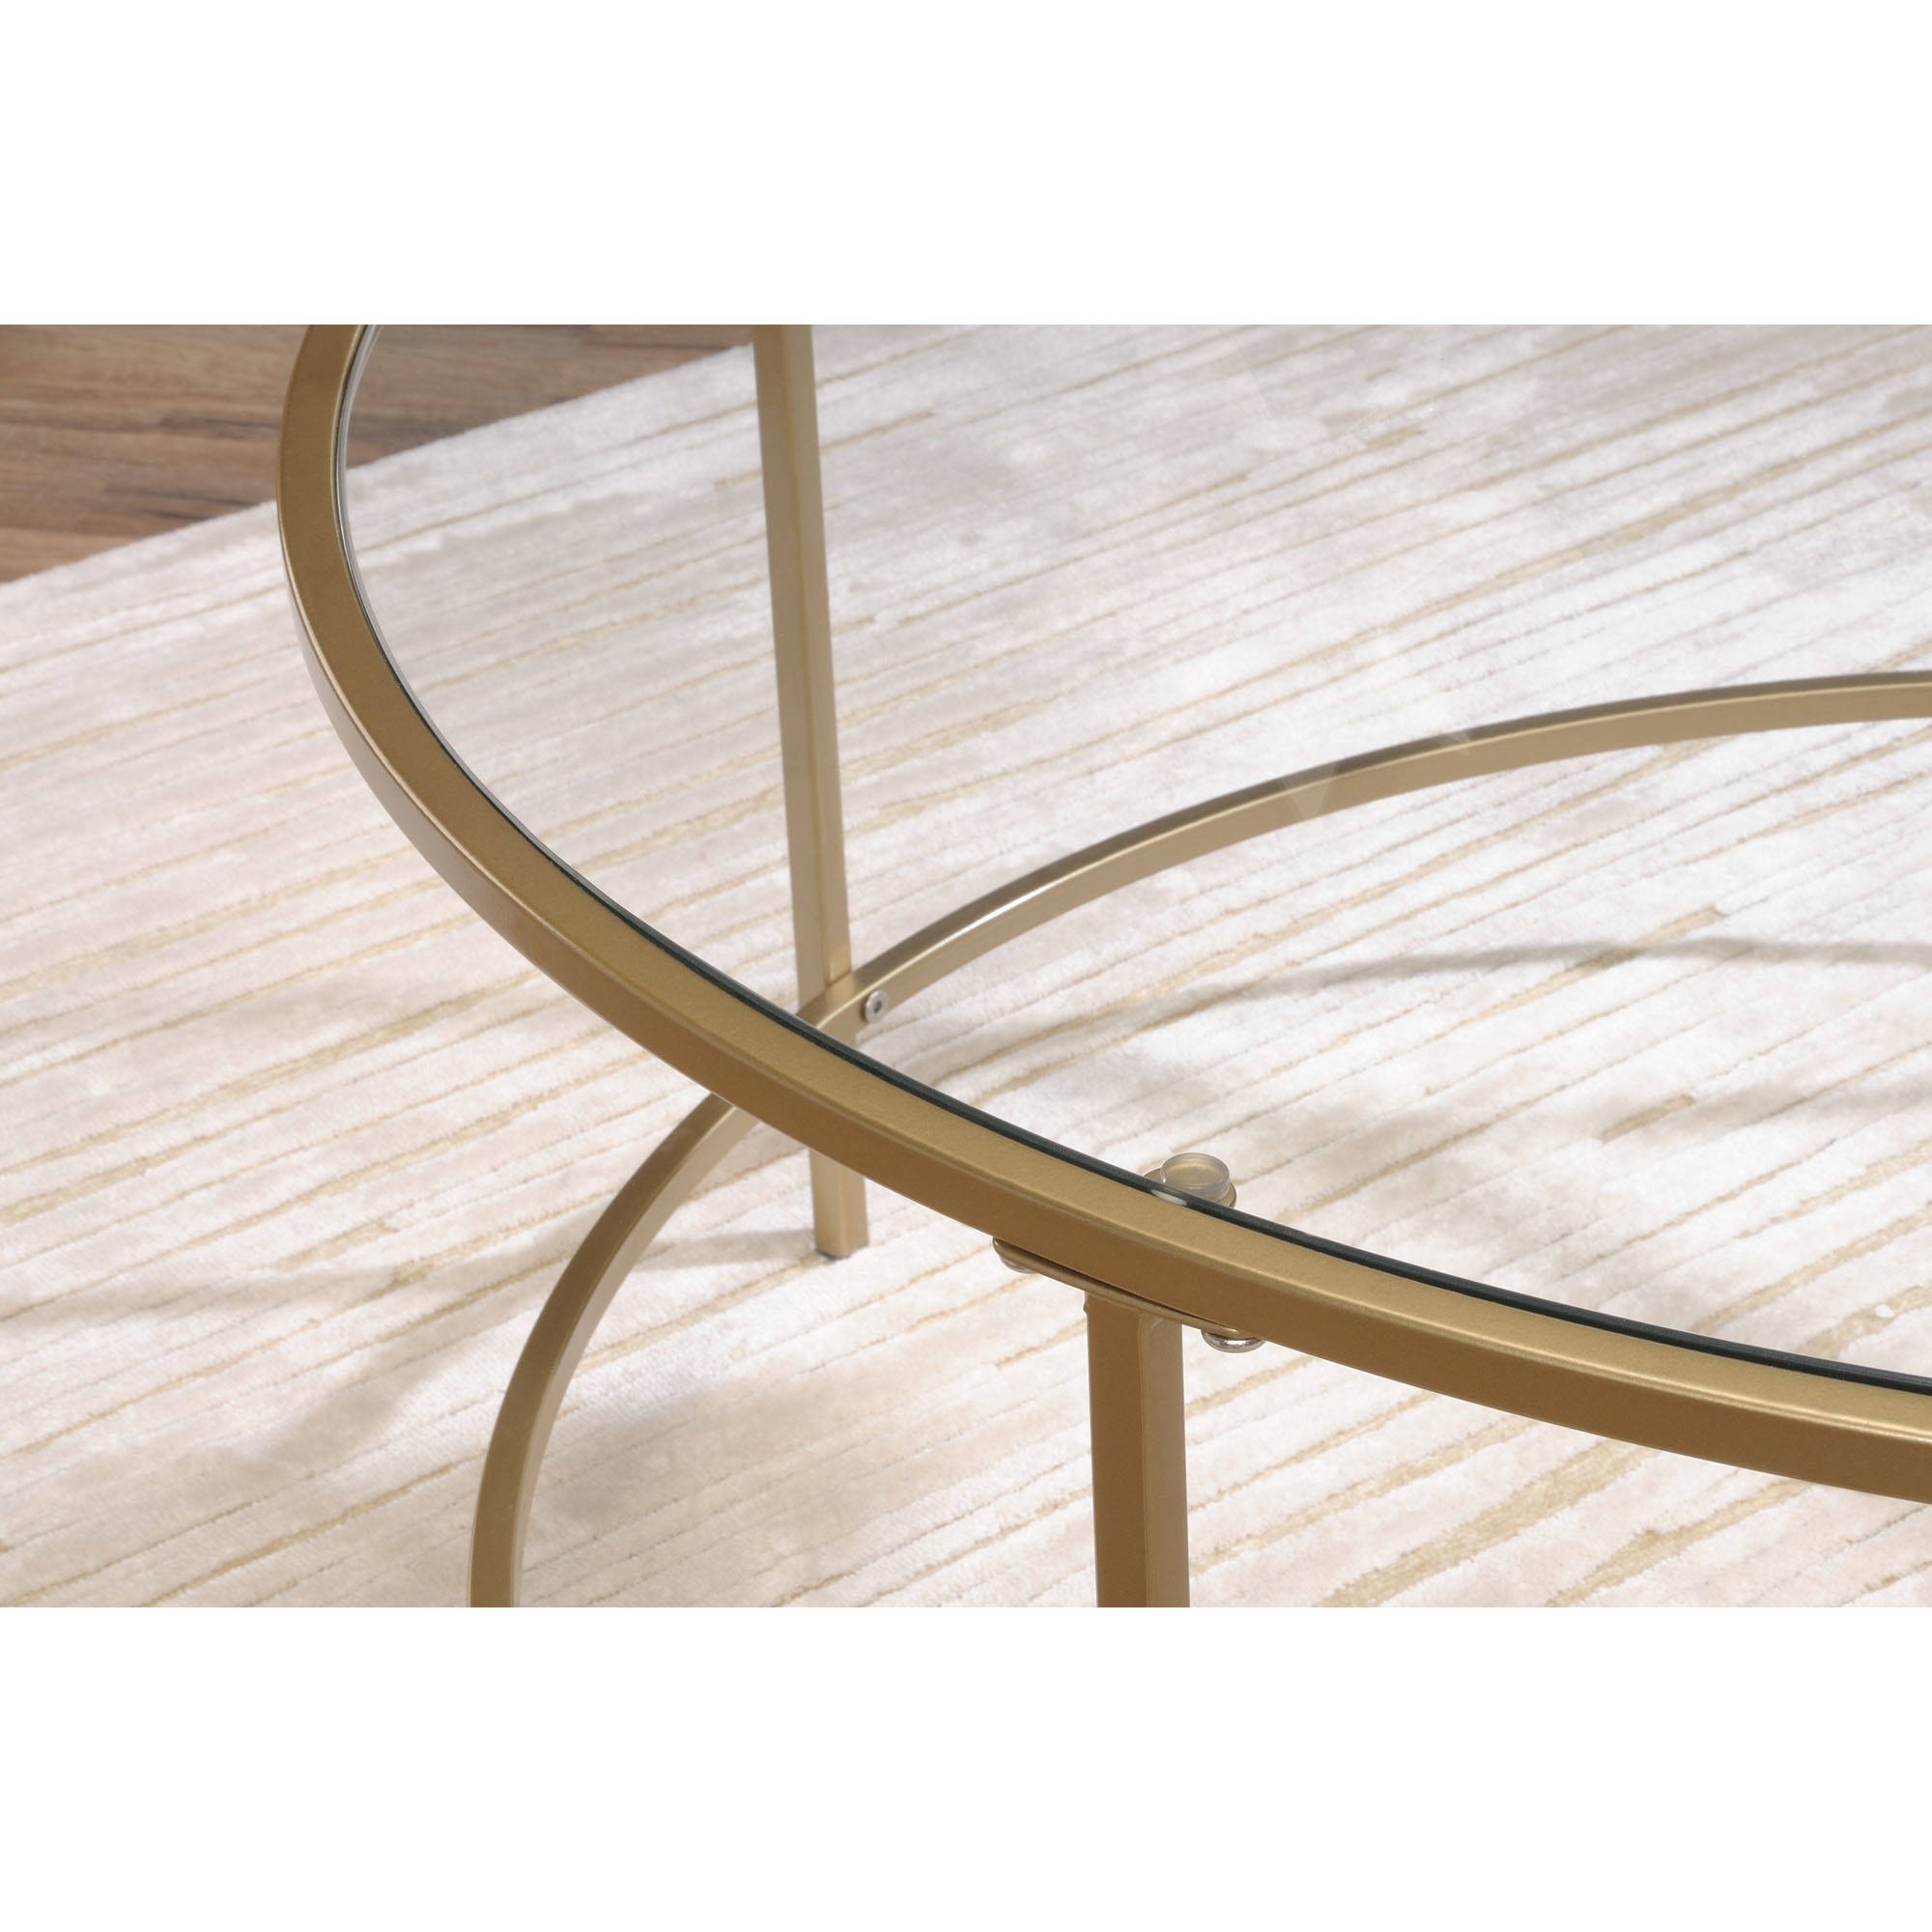 Round Coffee Table In Images of Plans Free